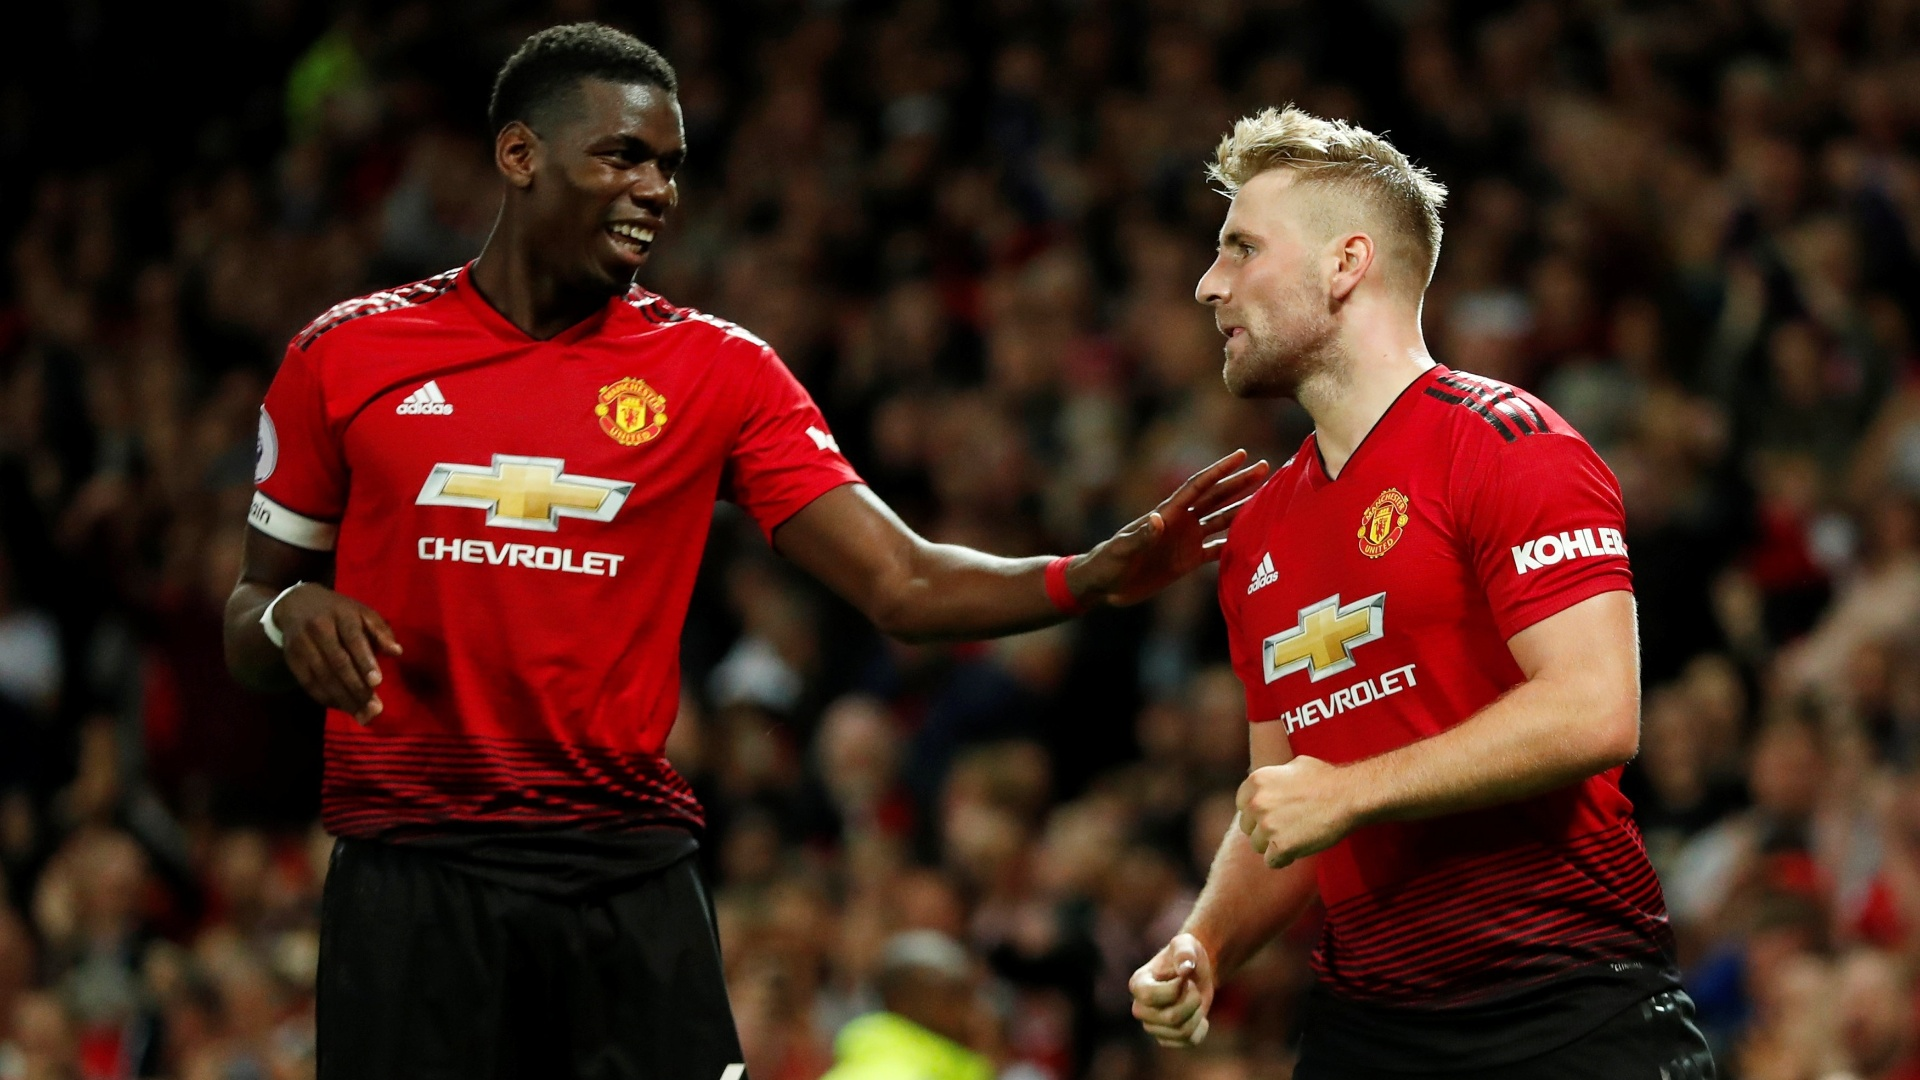 Paul Pogba e Luke Shaw anotaram os gols do Manchester United diante do Leicester